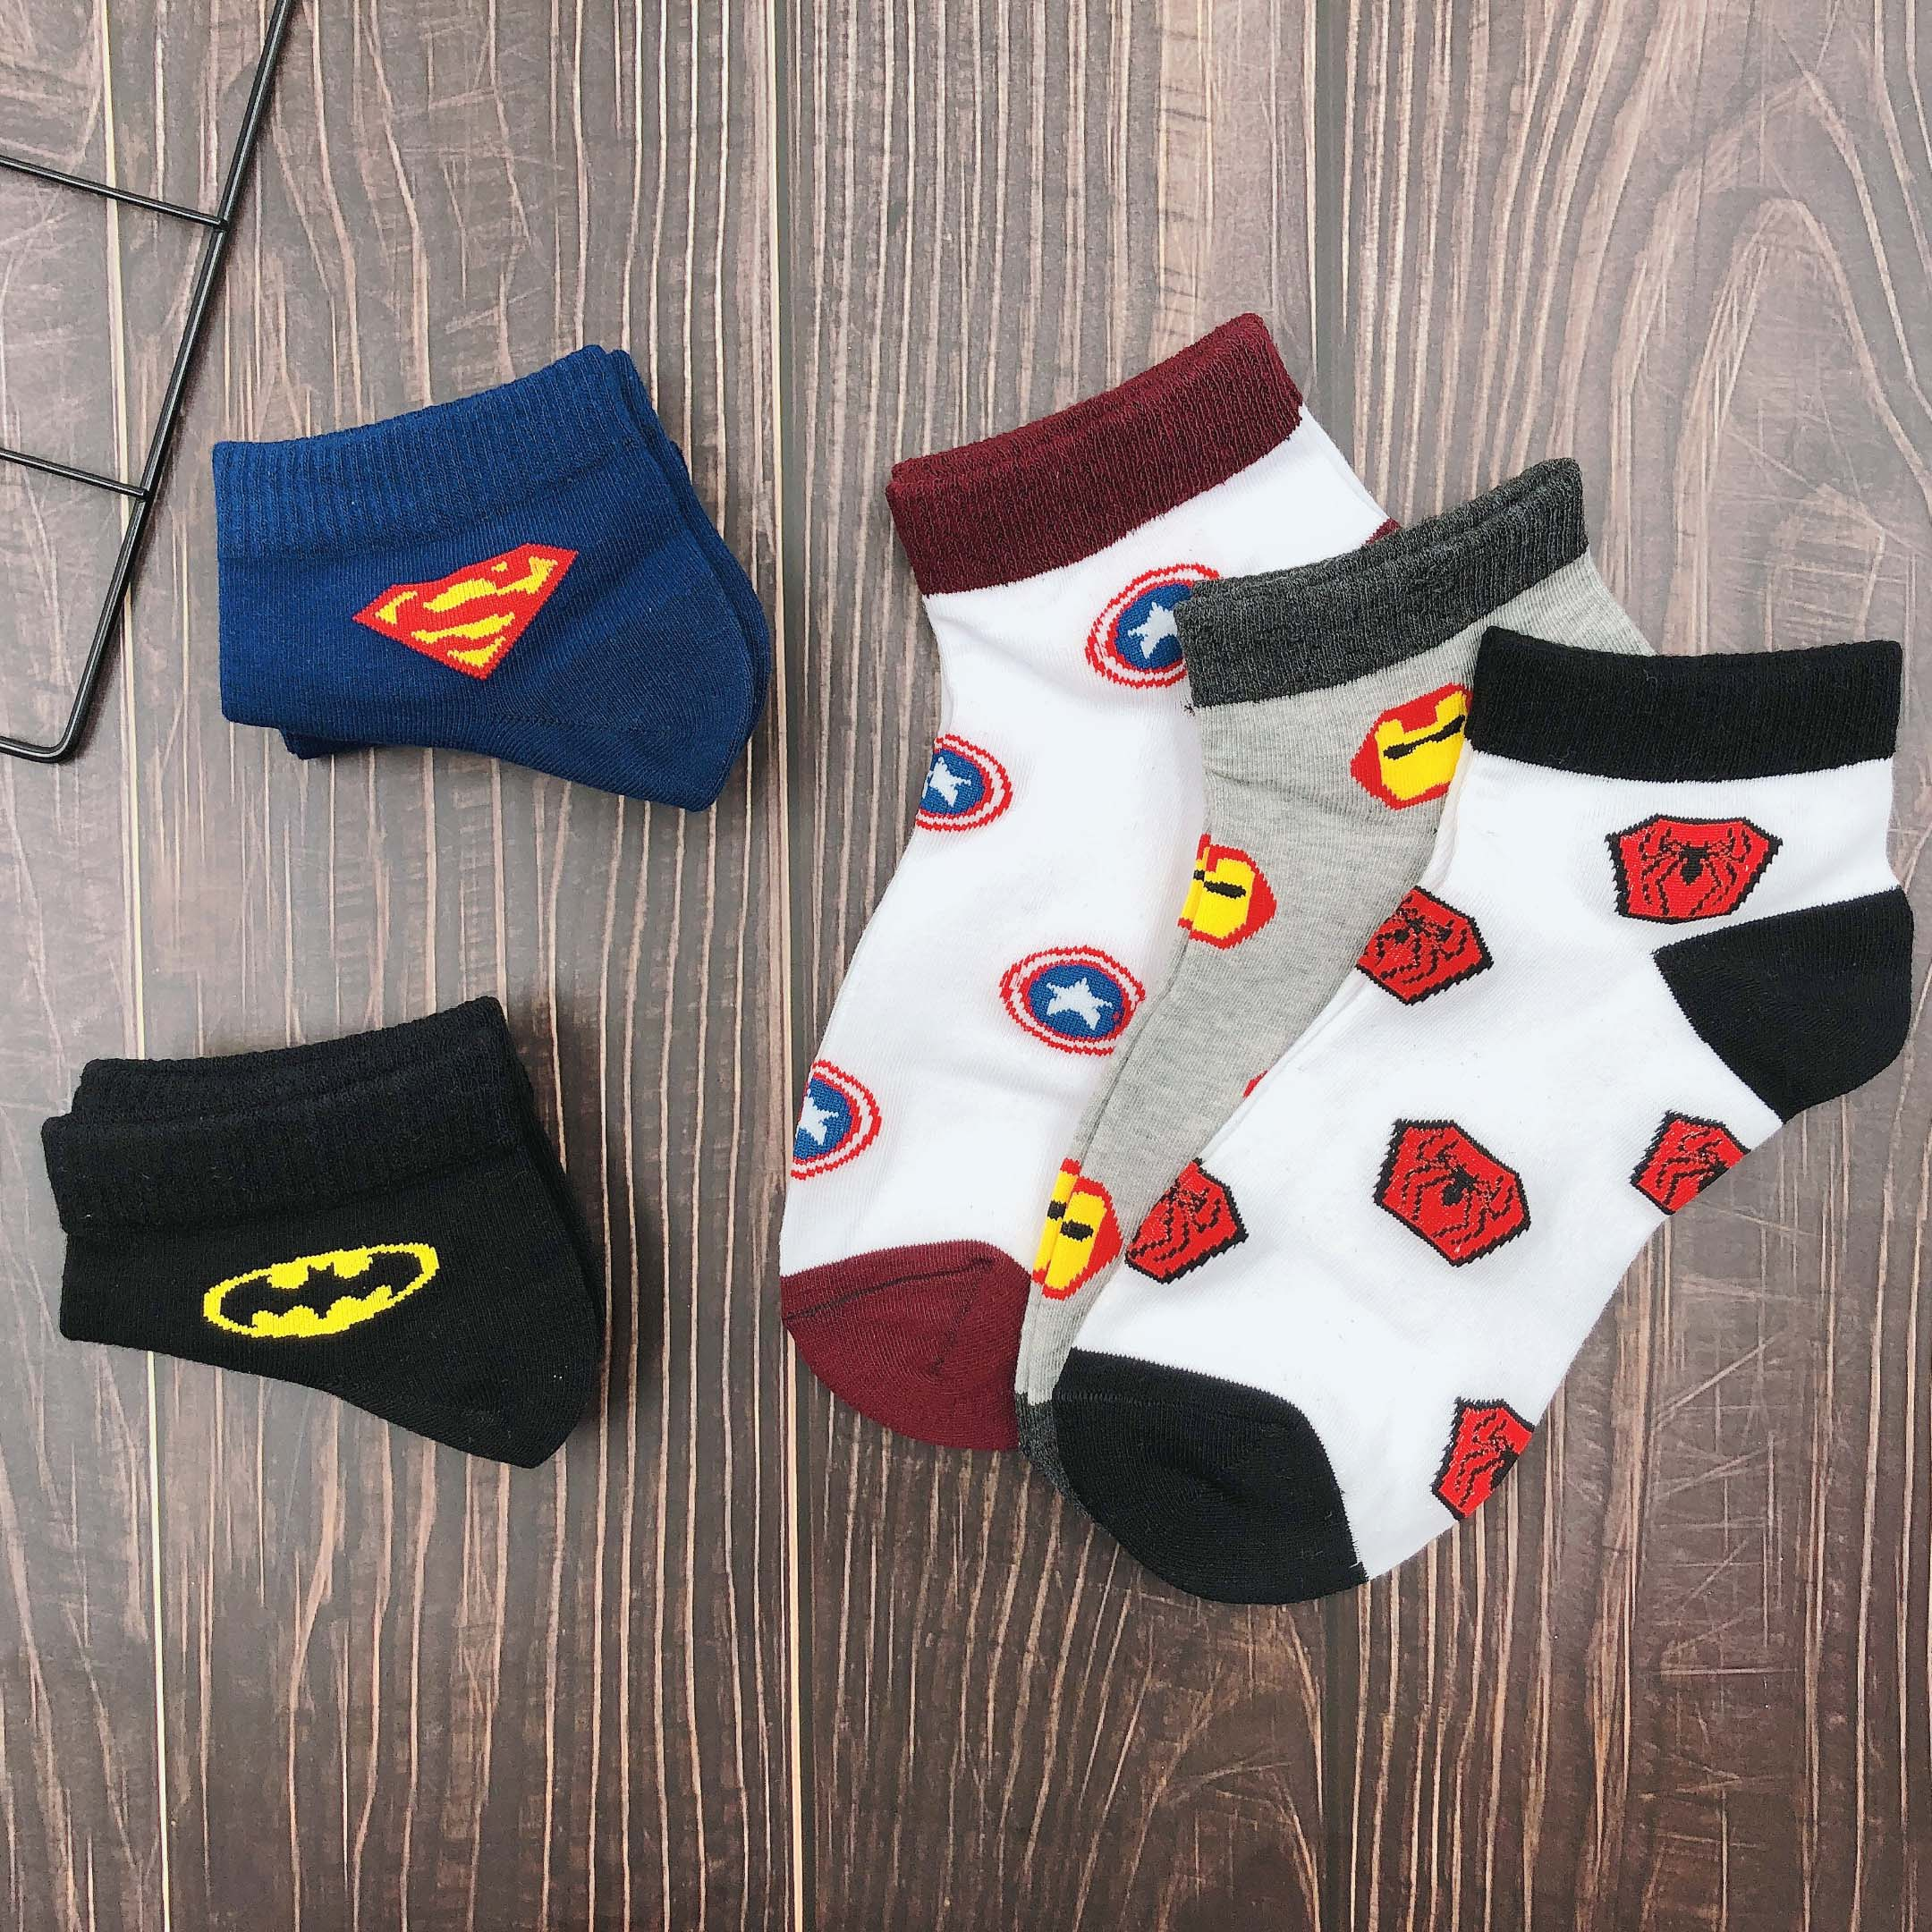 5 Pairs Men Socks Marvel Sports Super Man Bat Man Captain American Iron Man Spide Man Spring Summer Short Cotton Socks